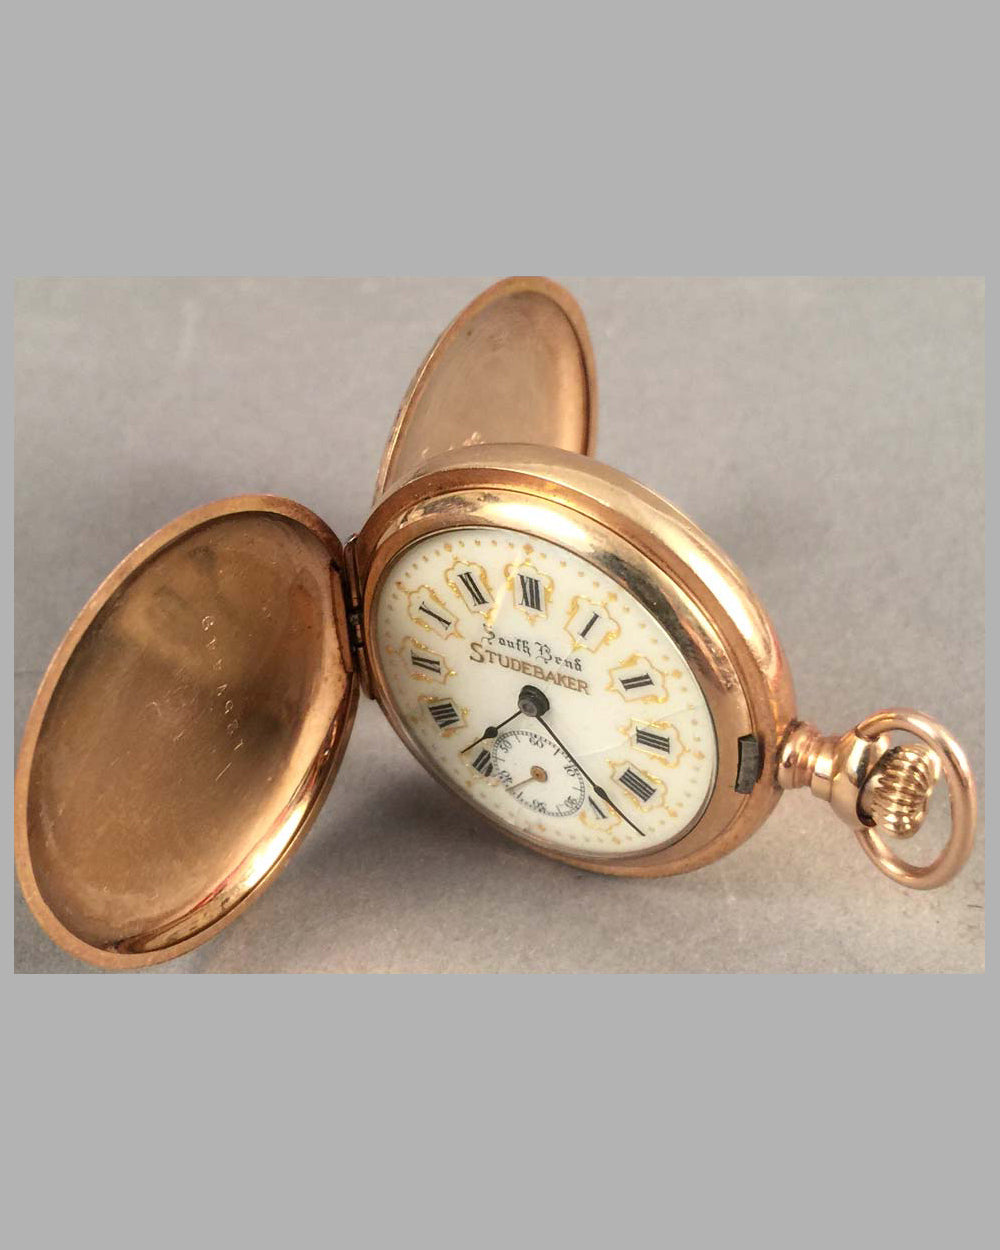 Studebaker woman pocket watch by South Bend